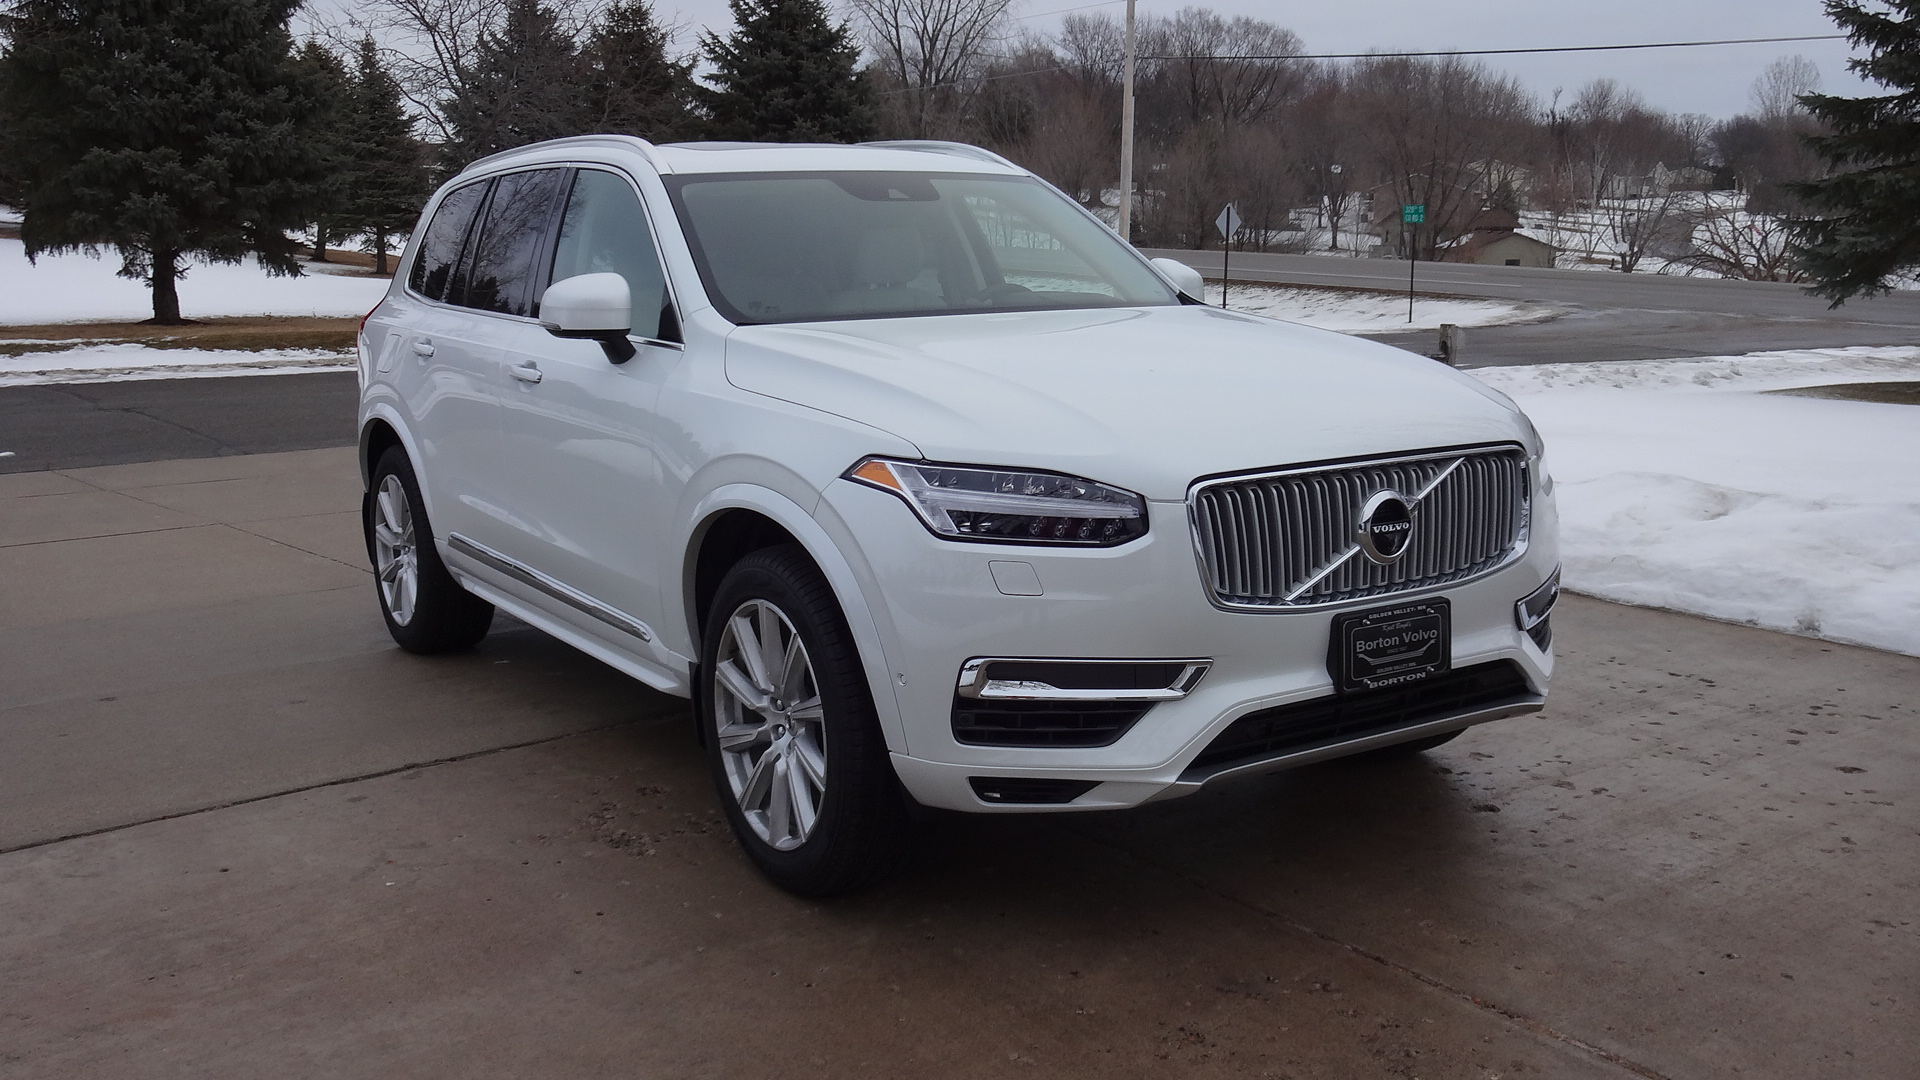 2016 Volvo Xc90 T8 Plug In Hybrid An Owner S First 21 Days